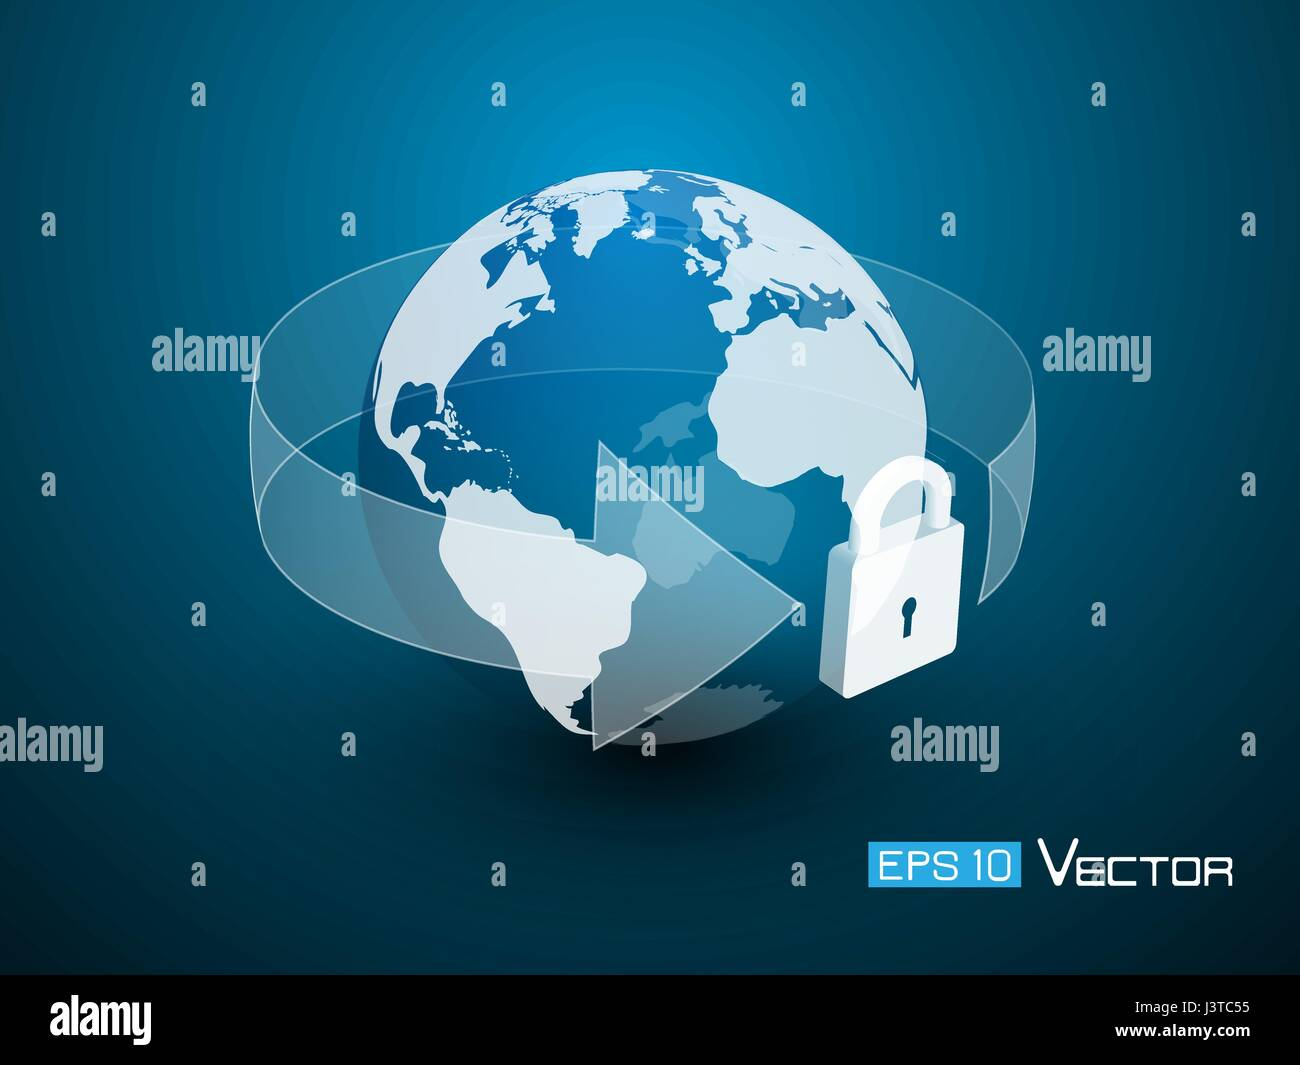 Security data design vector illustration eps10 graphic including security data design vector illustration eps10 graphic including sphere with world map arrow lock and blue color used a clipping mask and transp gumiabroncs Image collections